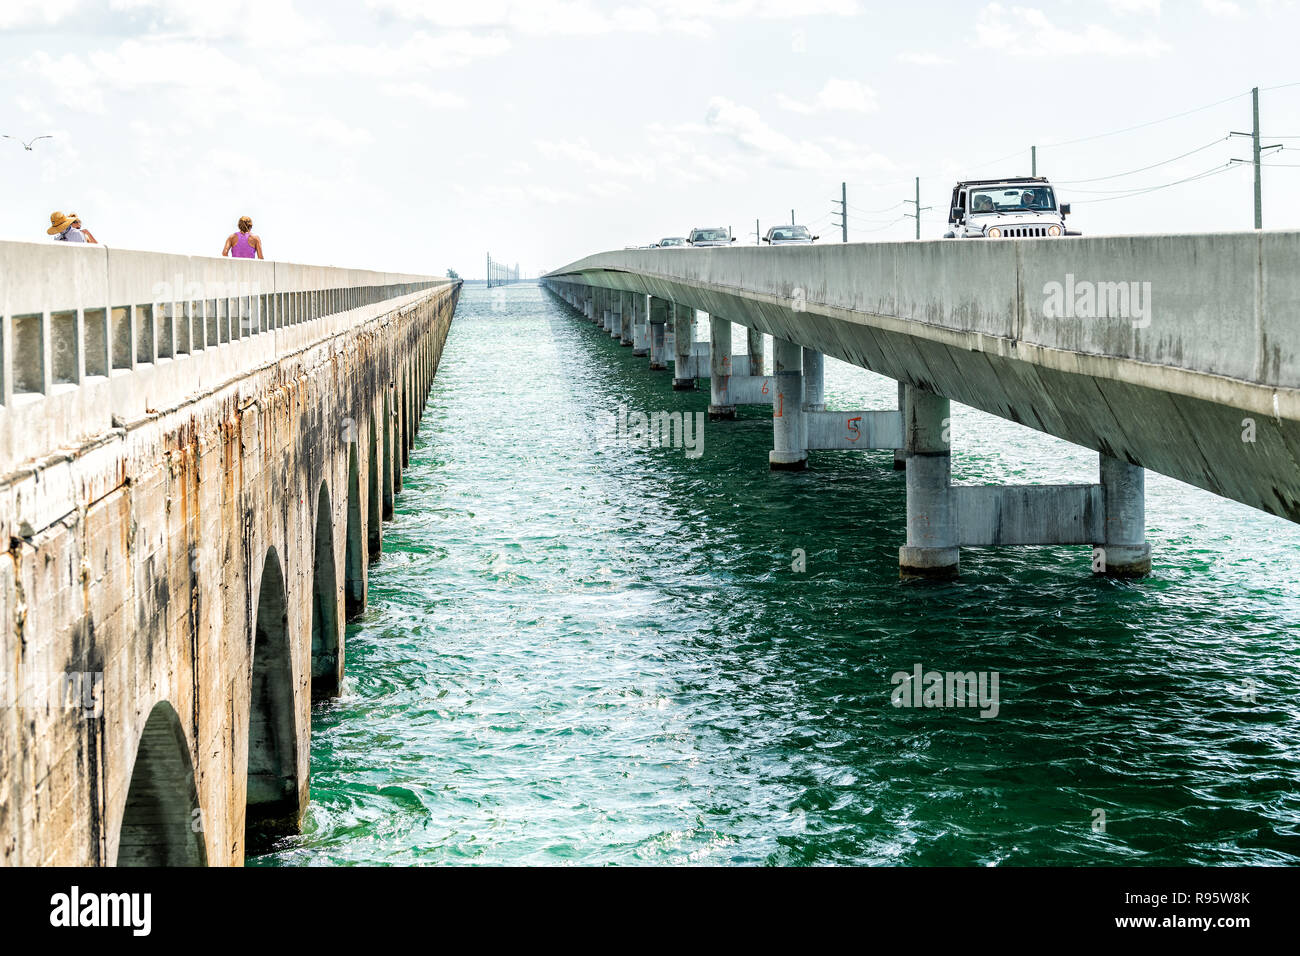 Piegon Key, USA - May 1, 2018: People walking, woman running, jogging at Knights Key-Pigeon Key-Moser Channel-Pacet Channel Bridge (Old Seven Mile Bri - Stock Image